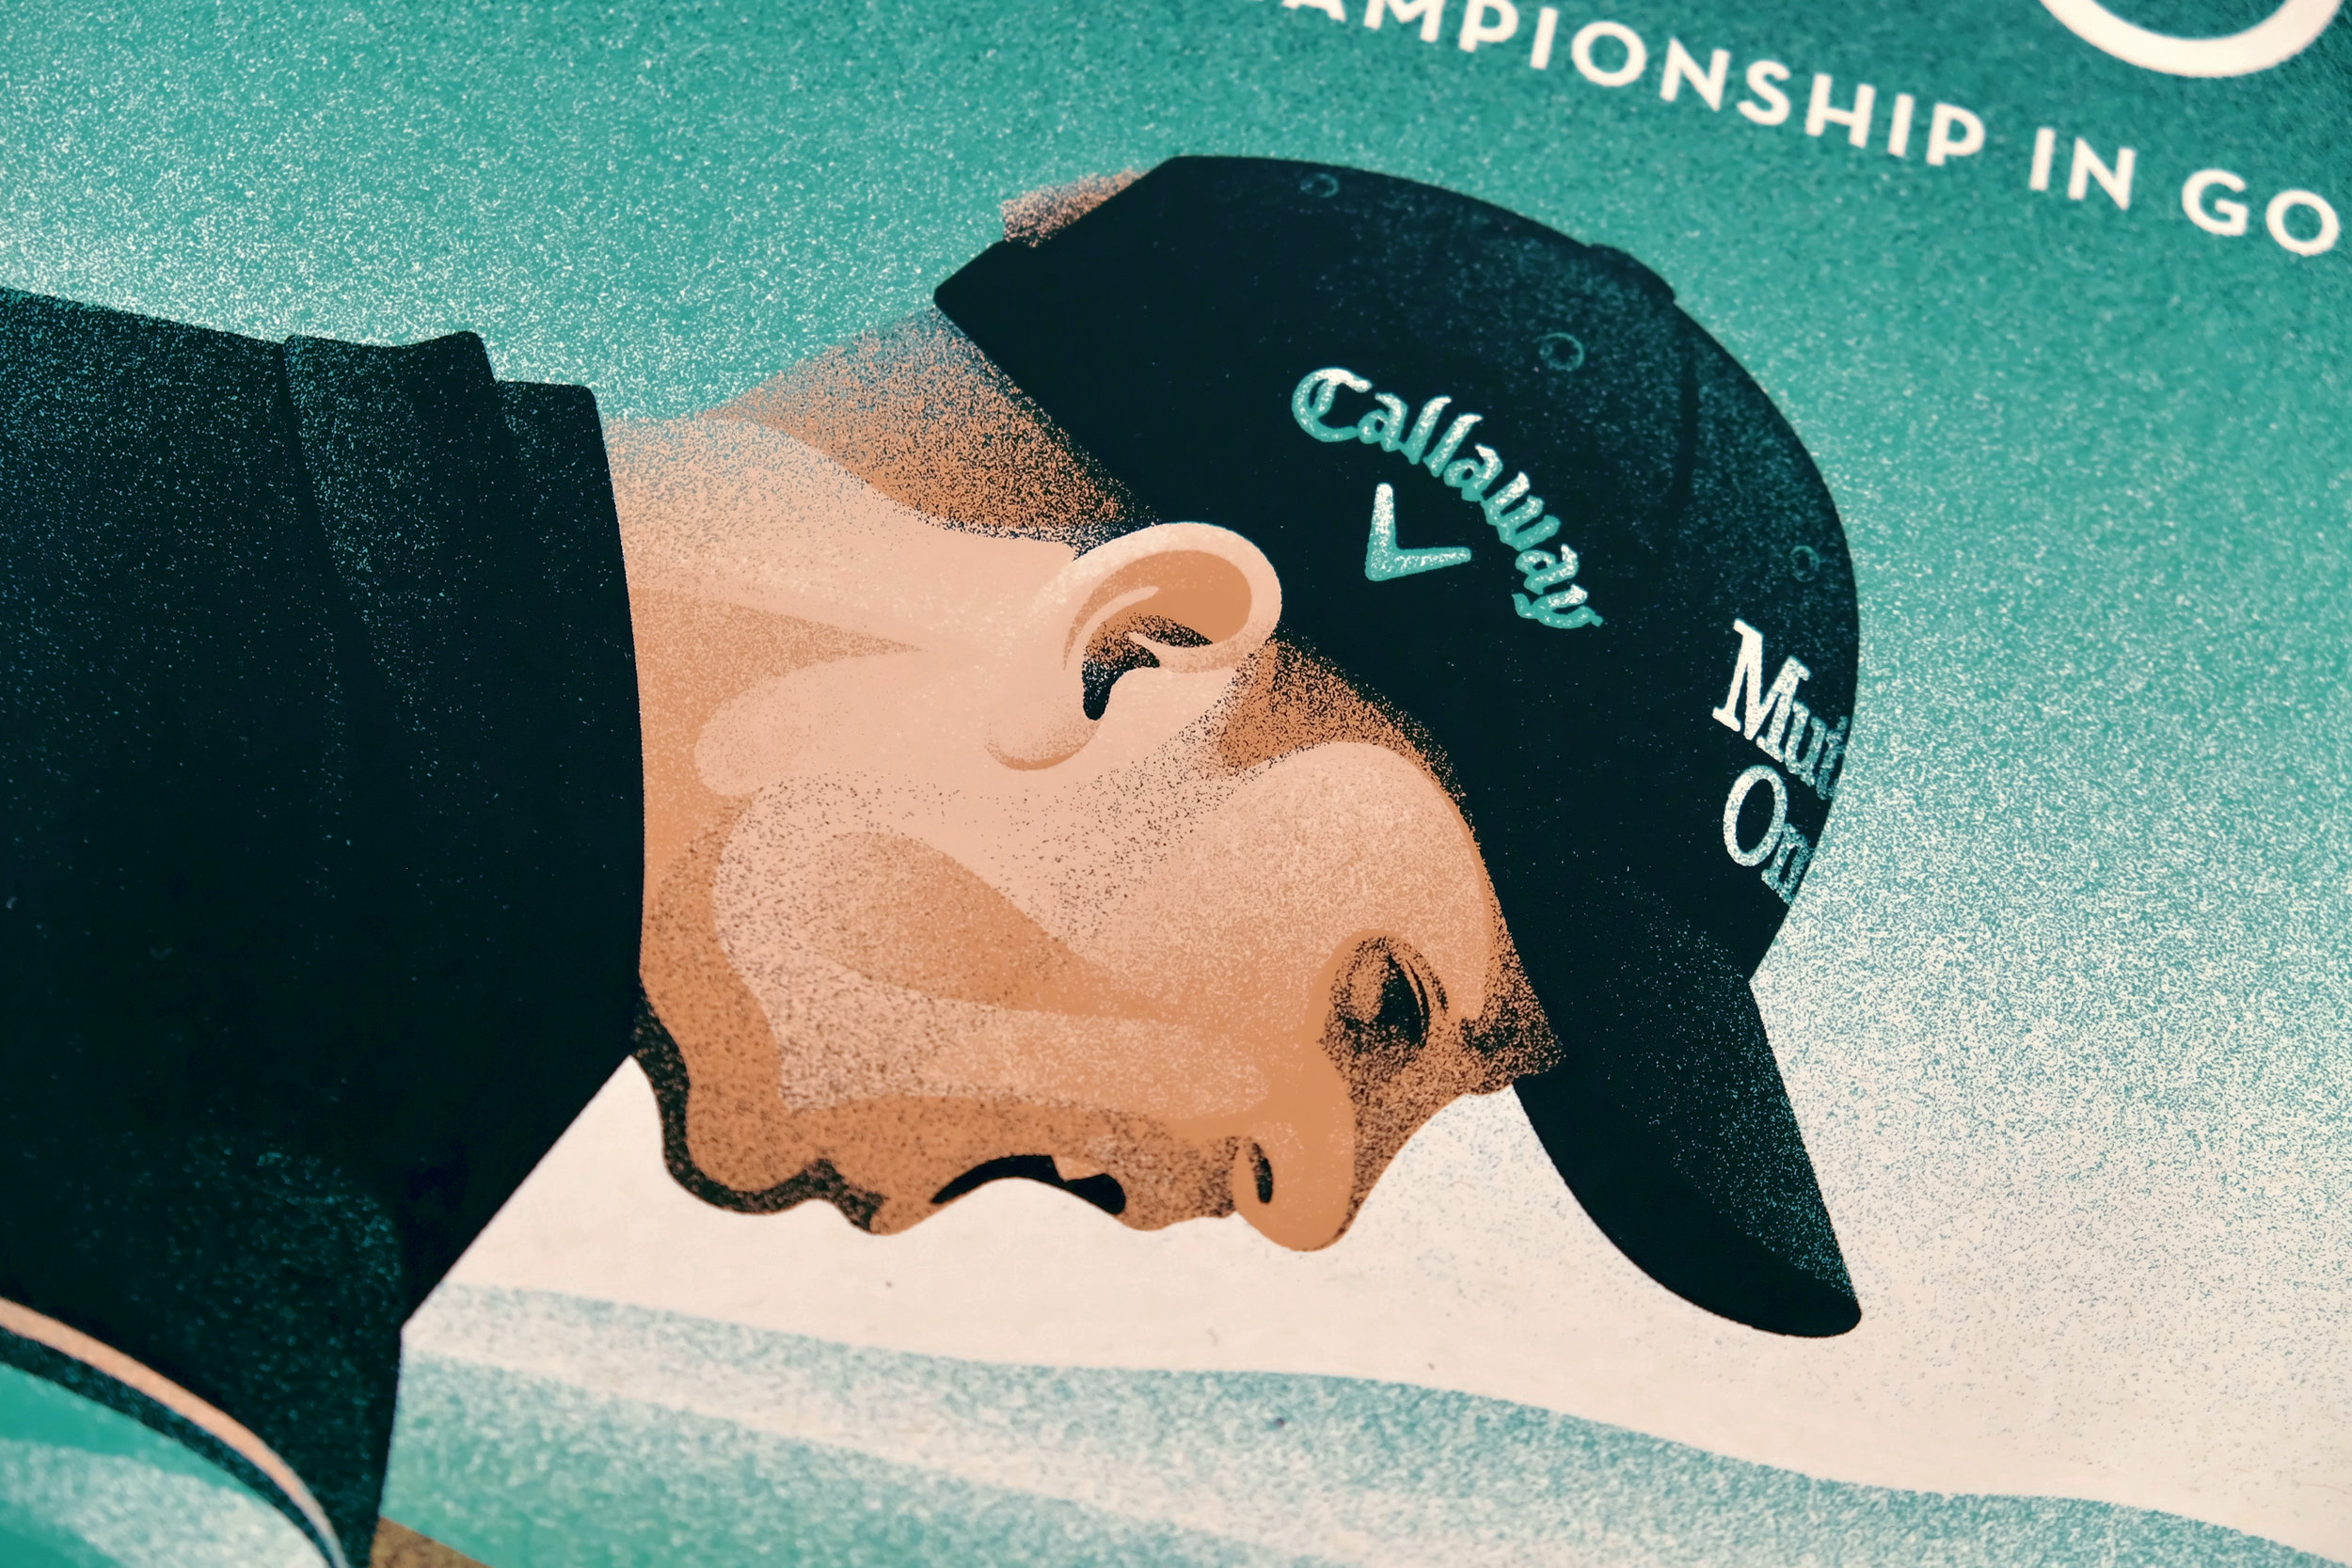 Callaway Open Championship Poster by DKNG